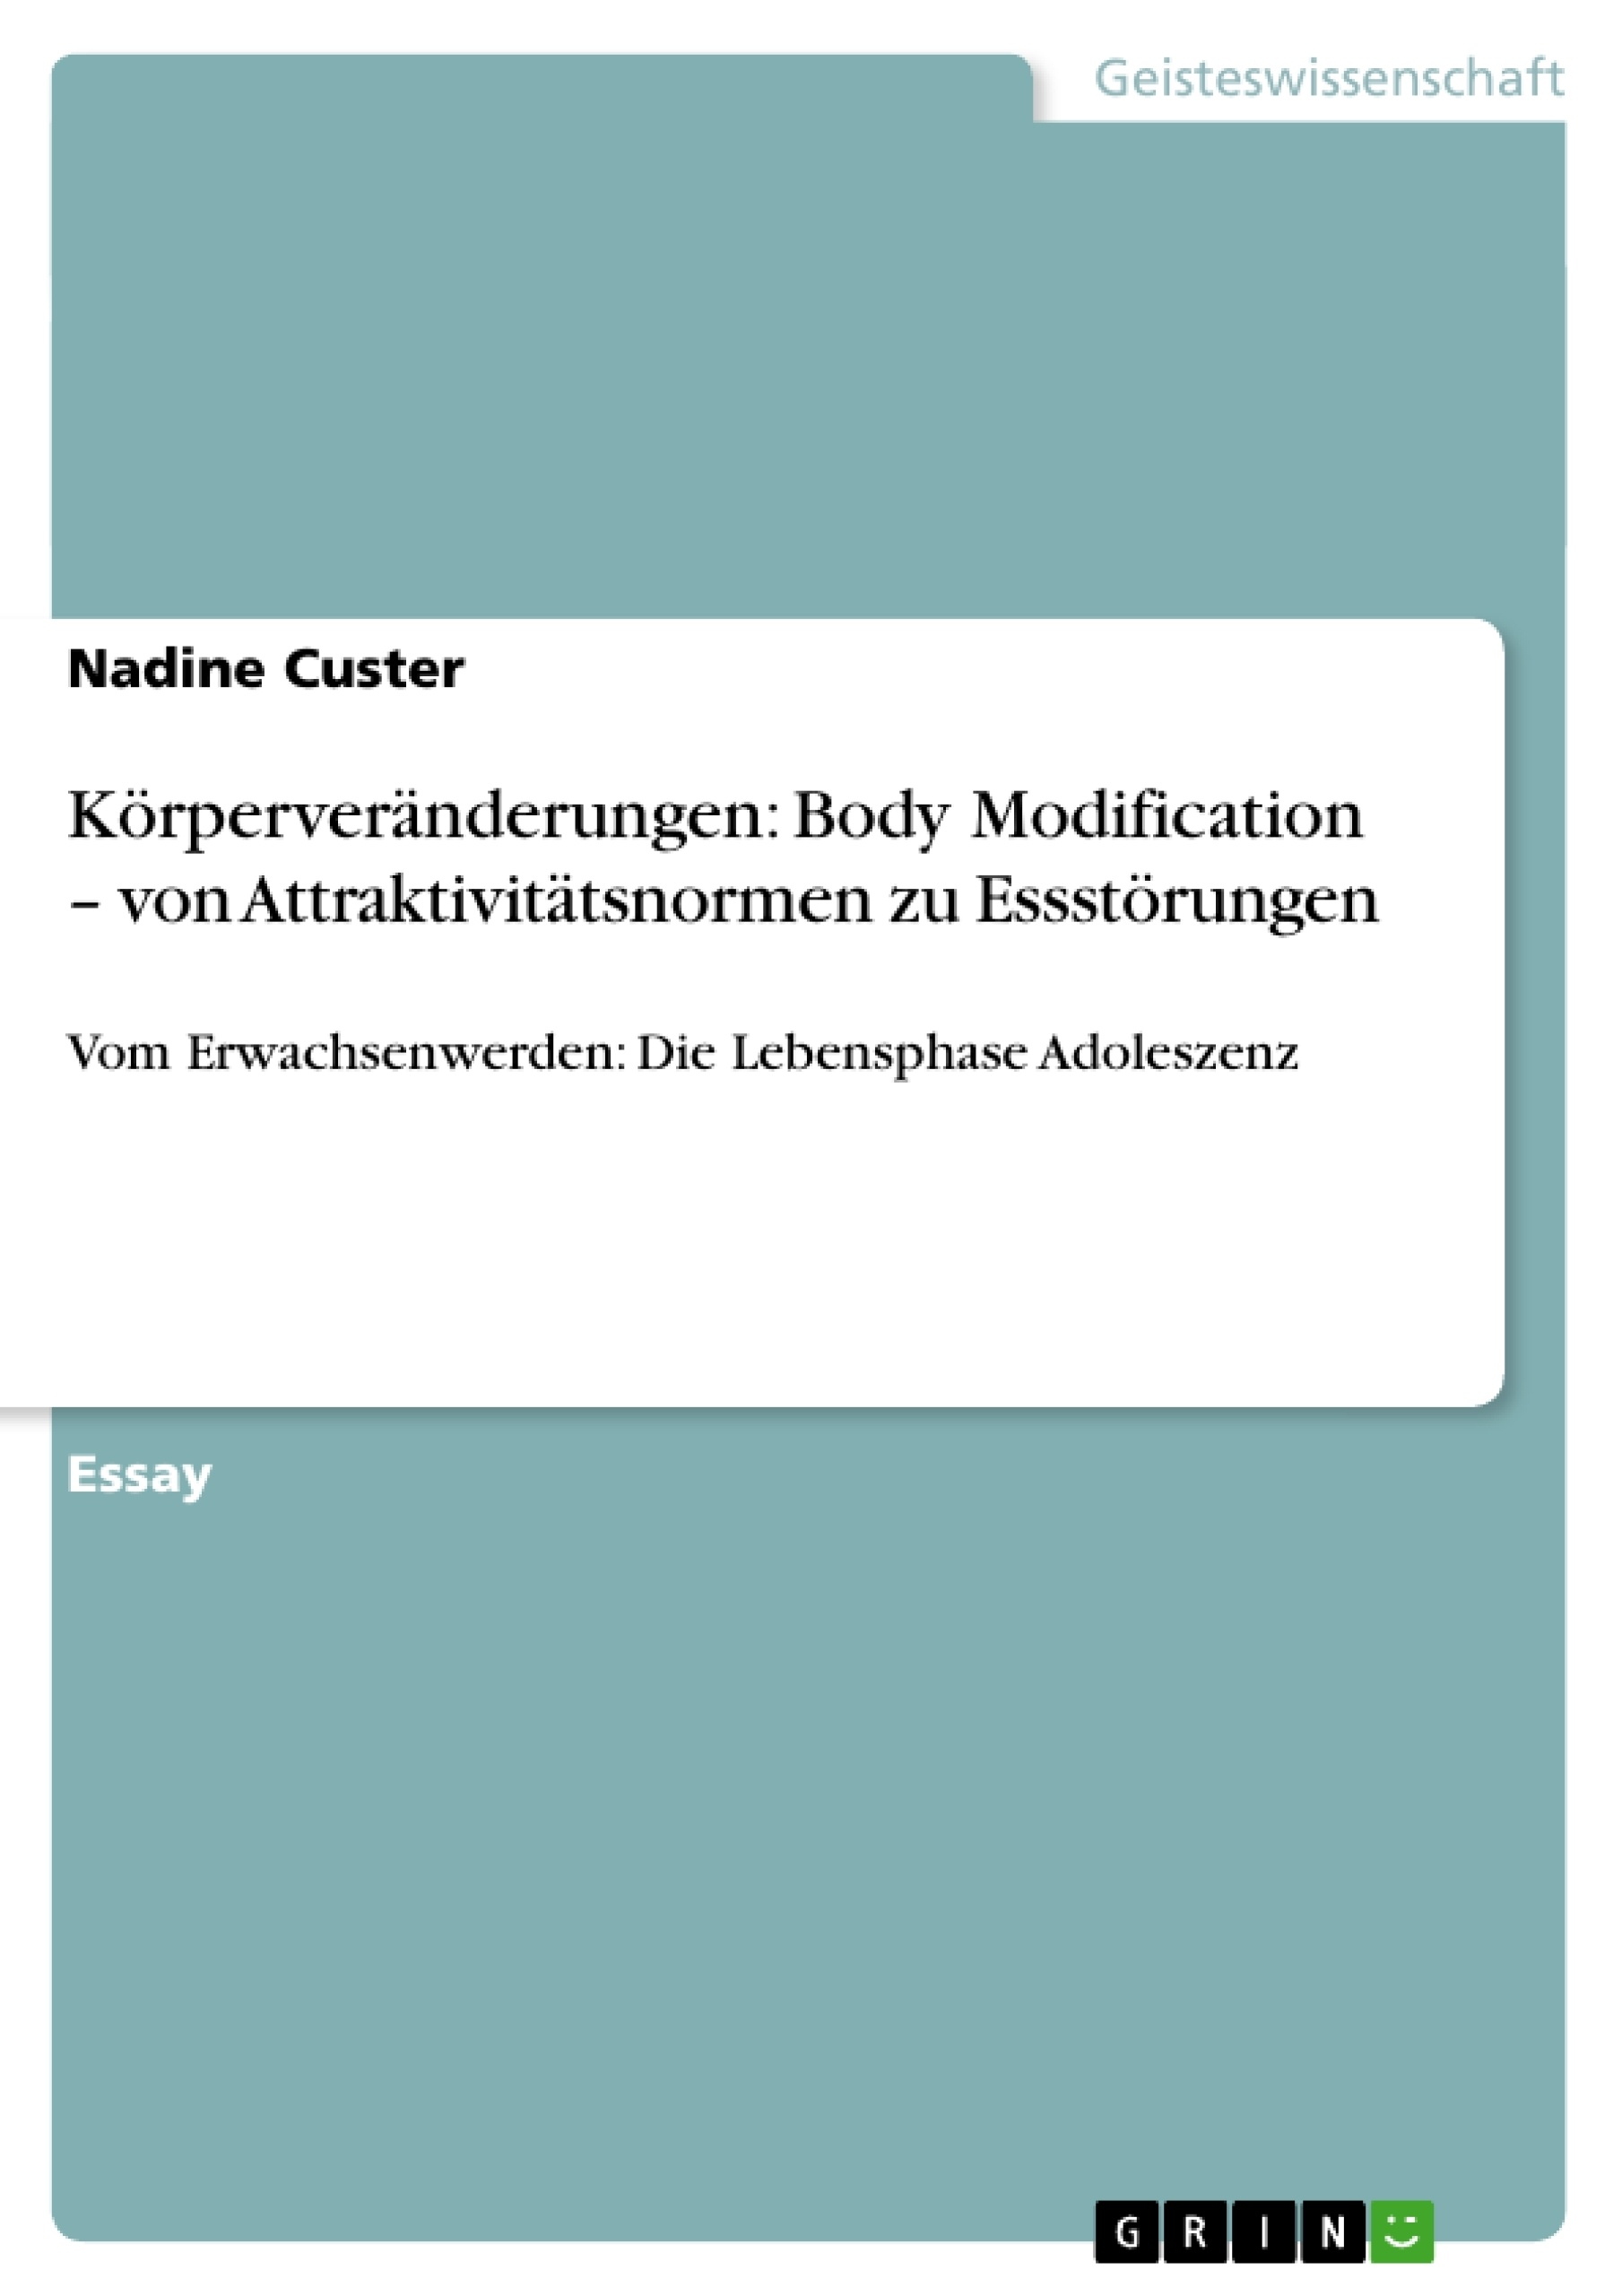 essay on body modification Body modification essays: over 180,000 body modification essays, body modification term papers, body modification research paper, book reports 184 990 essays, term and research papers.